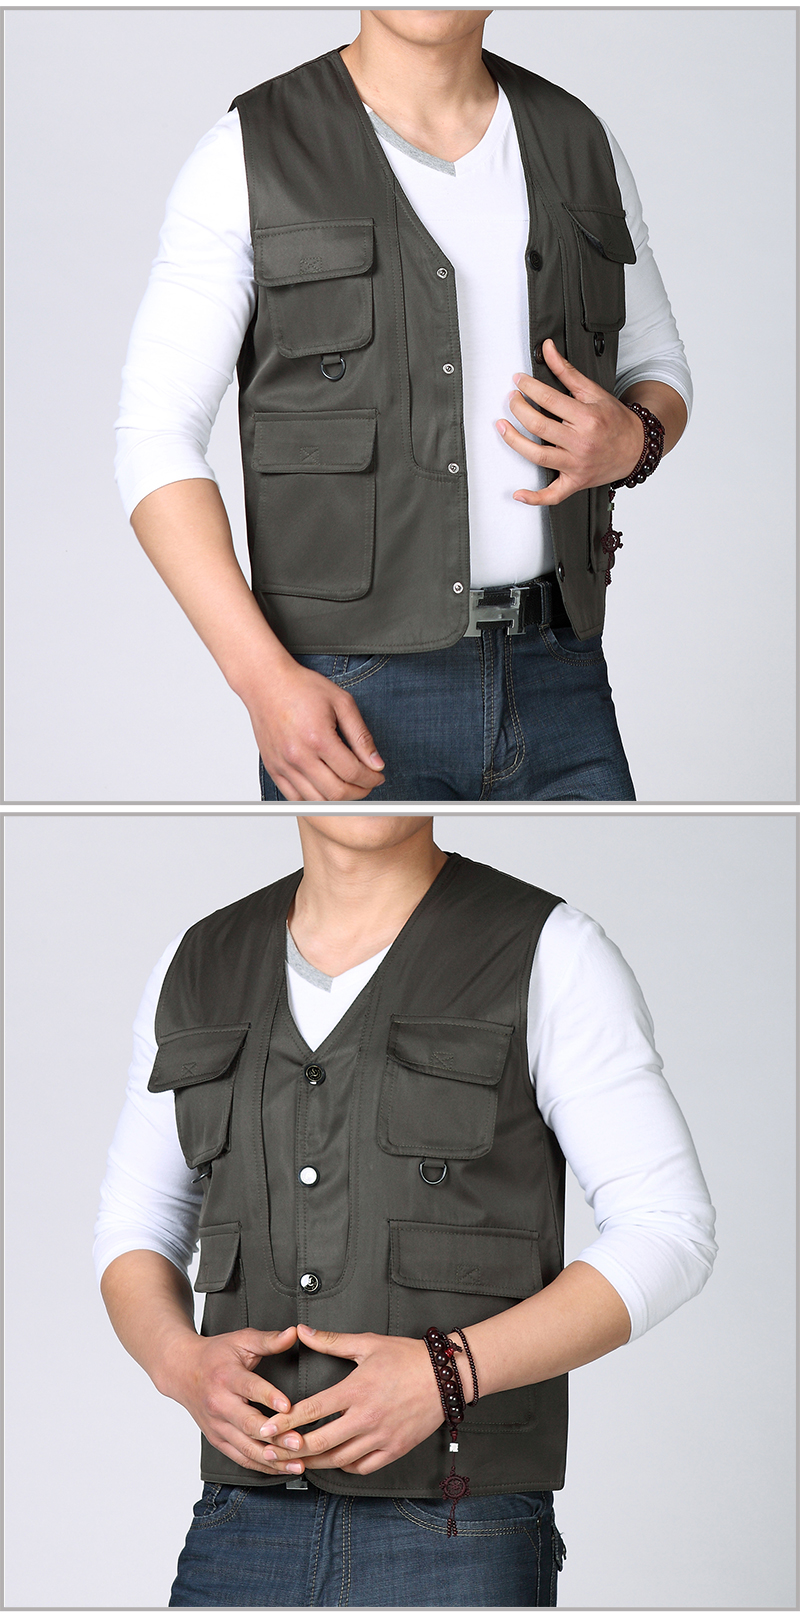 Spring Autumn Man Casual Vest Army Green Black Waistcoat For Men Leisure Gilet Male Herringbone Vest Multi Pockets Waistcoat Mens Weskit (4)